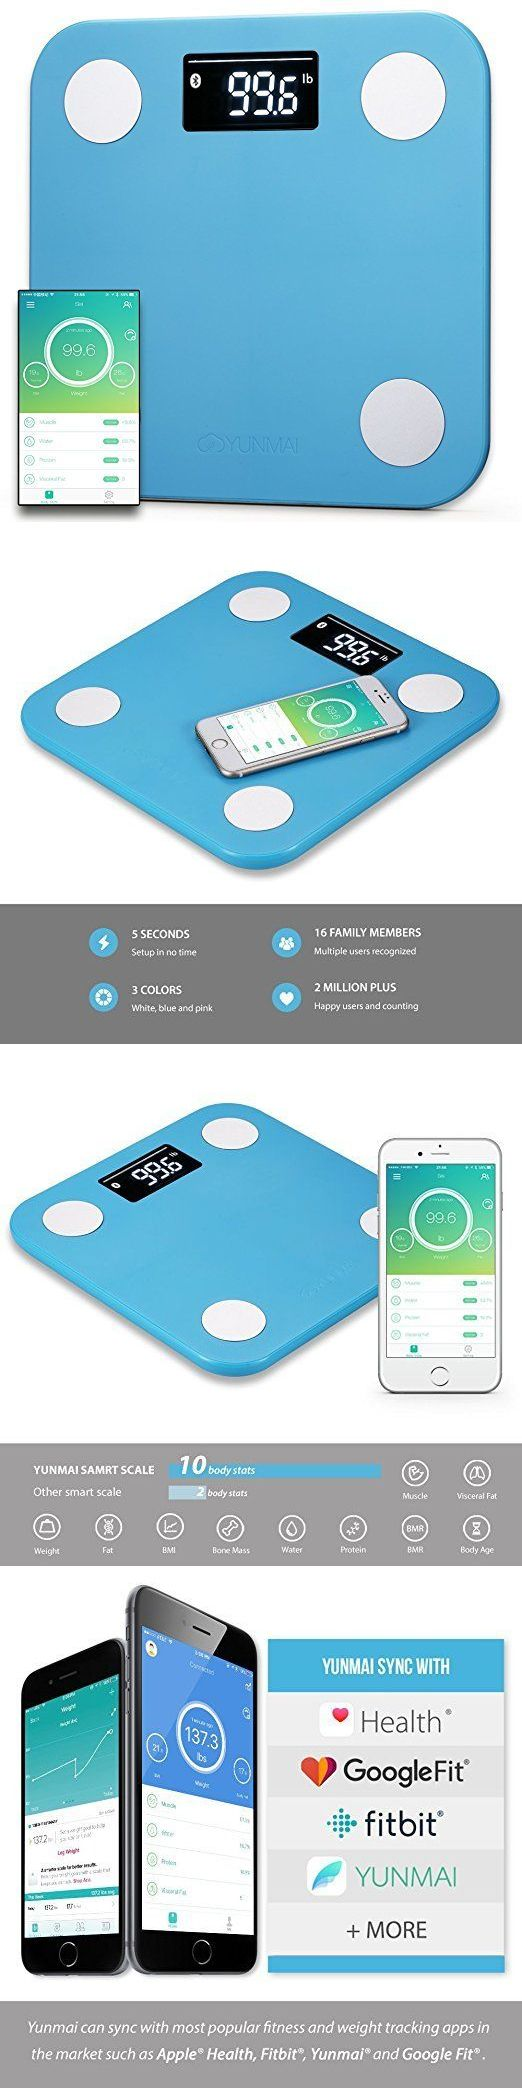 Scales: Body Fat Scale Weight Bmi Digital Analyzer Loss Body Mass Health Fitness Monitor -> BUY IT NOW ONLY: $69.47 on eBay!